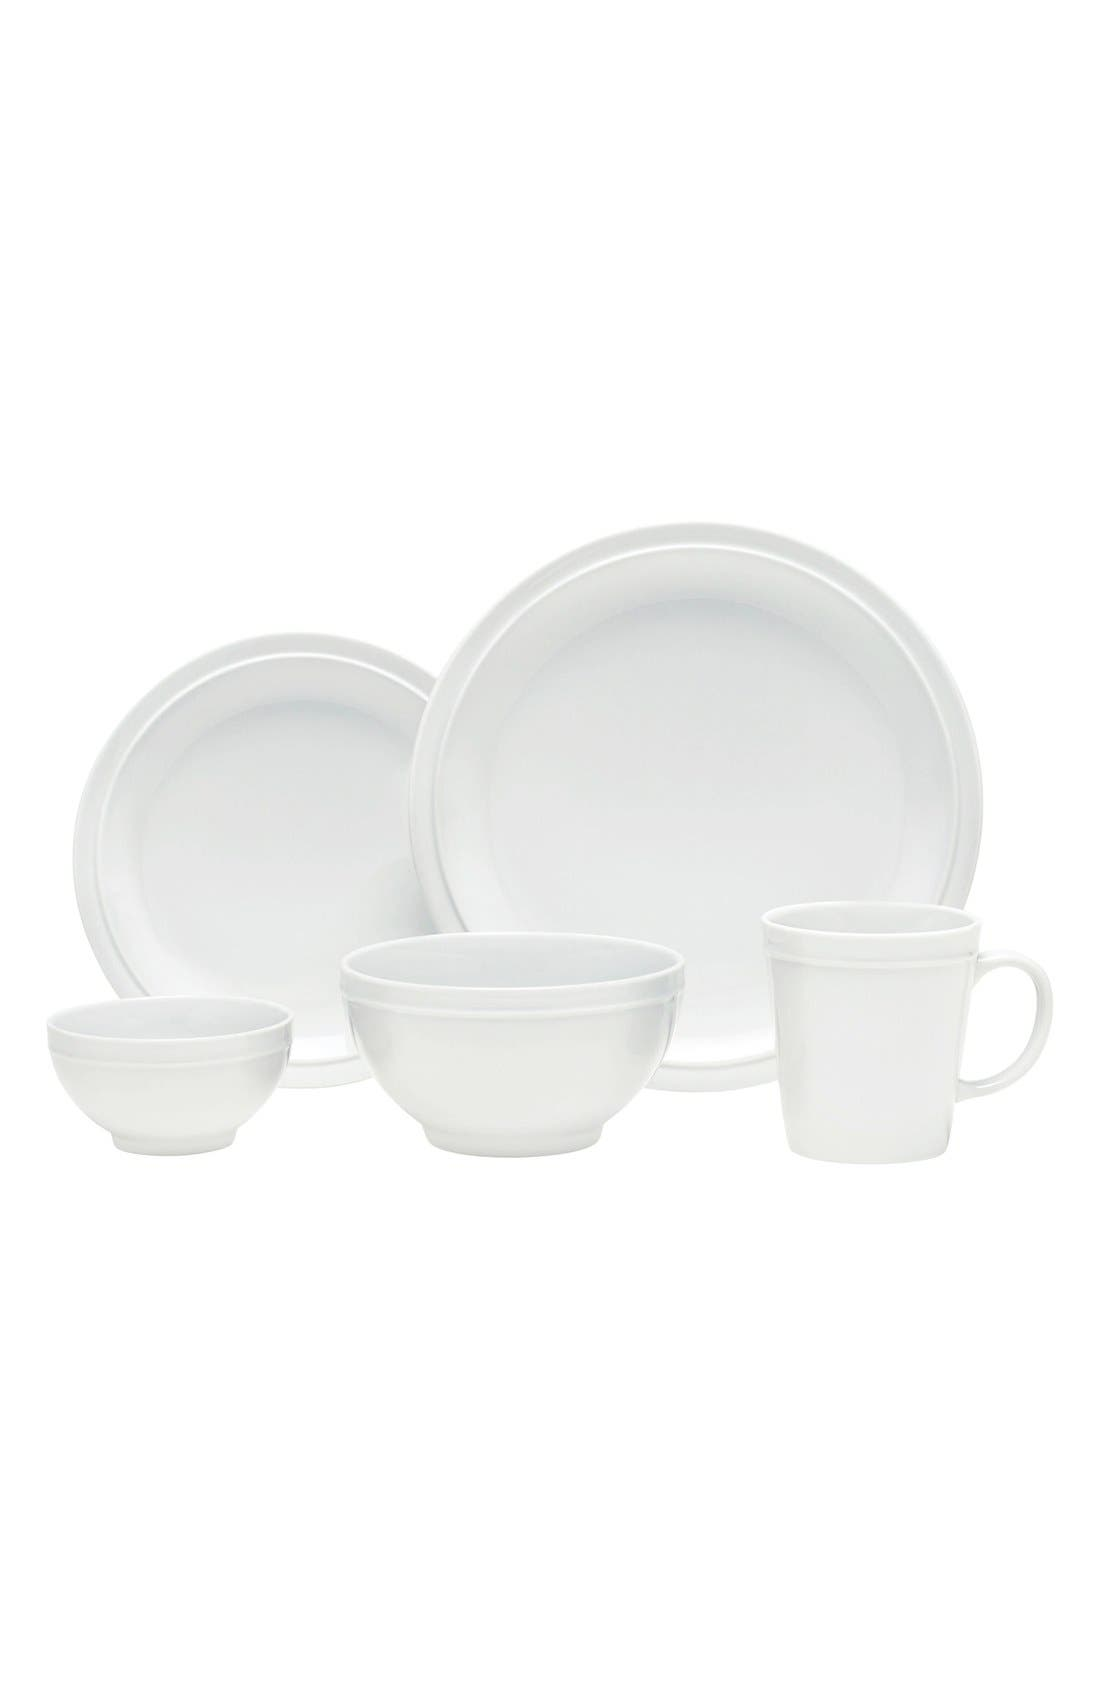 Alternate Image 2  - Nordstrom at Home Madrona Set of 4 Coffee Mugs ($32 Value)